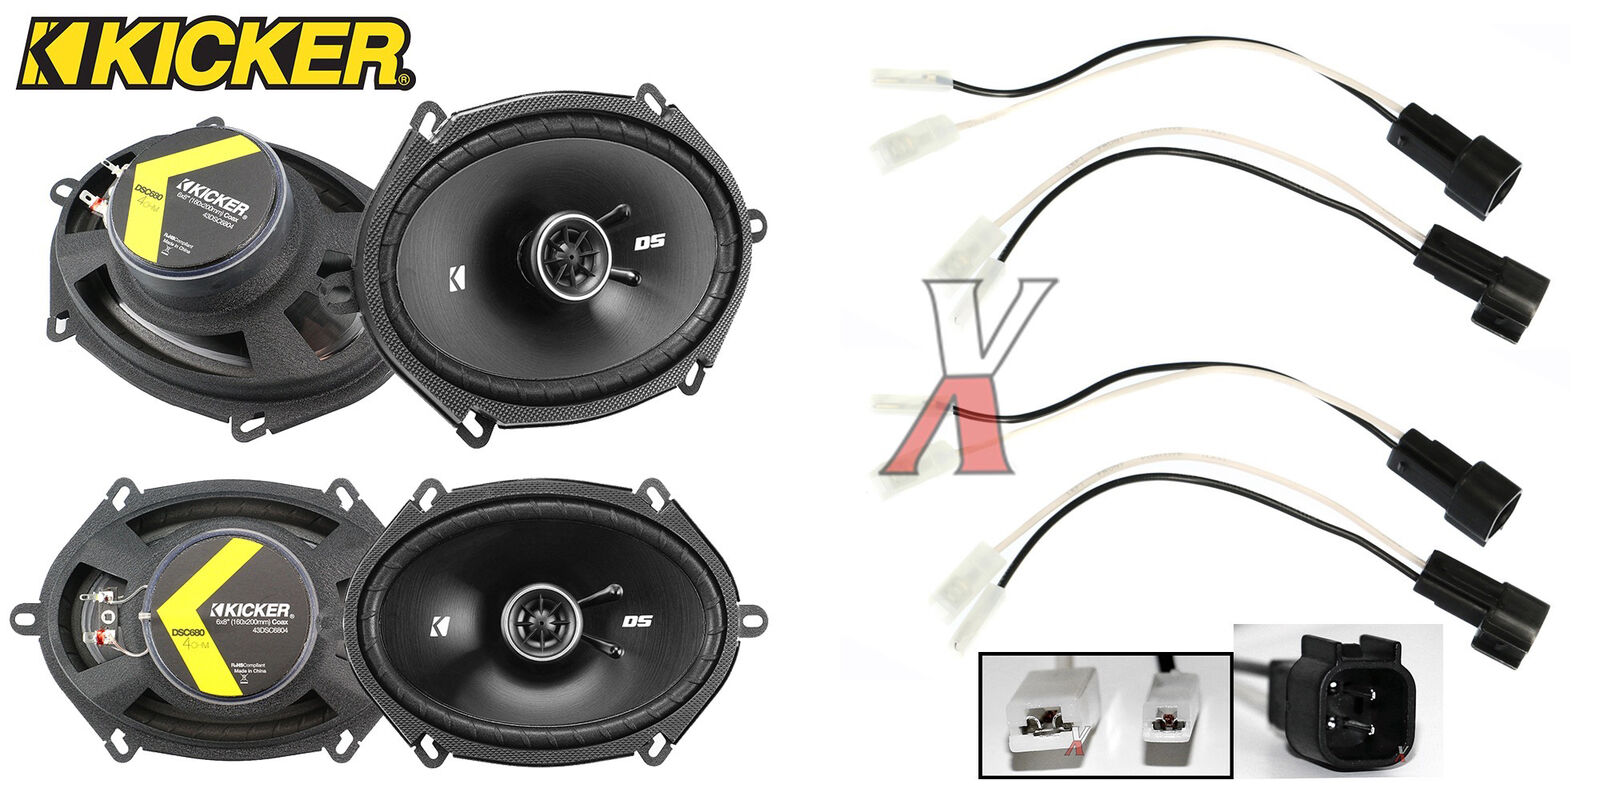 Kicker Dsc680 6x8 Speakers With Wiring Harness Fits Ford 2 Pairs 2000 Excursion 1 Of 8 See More